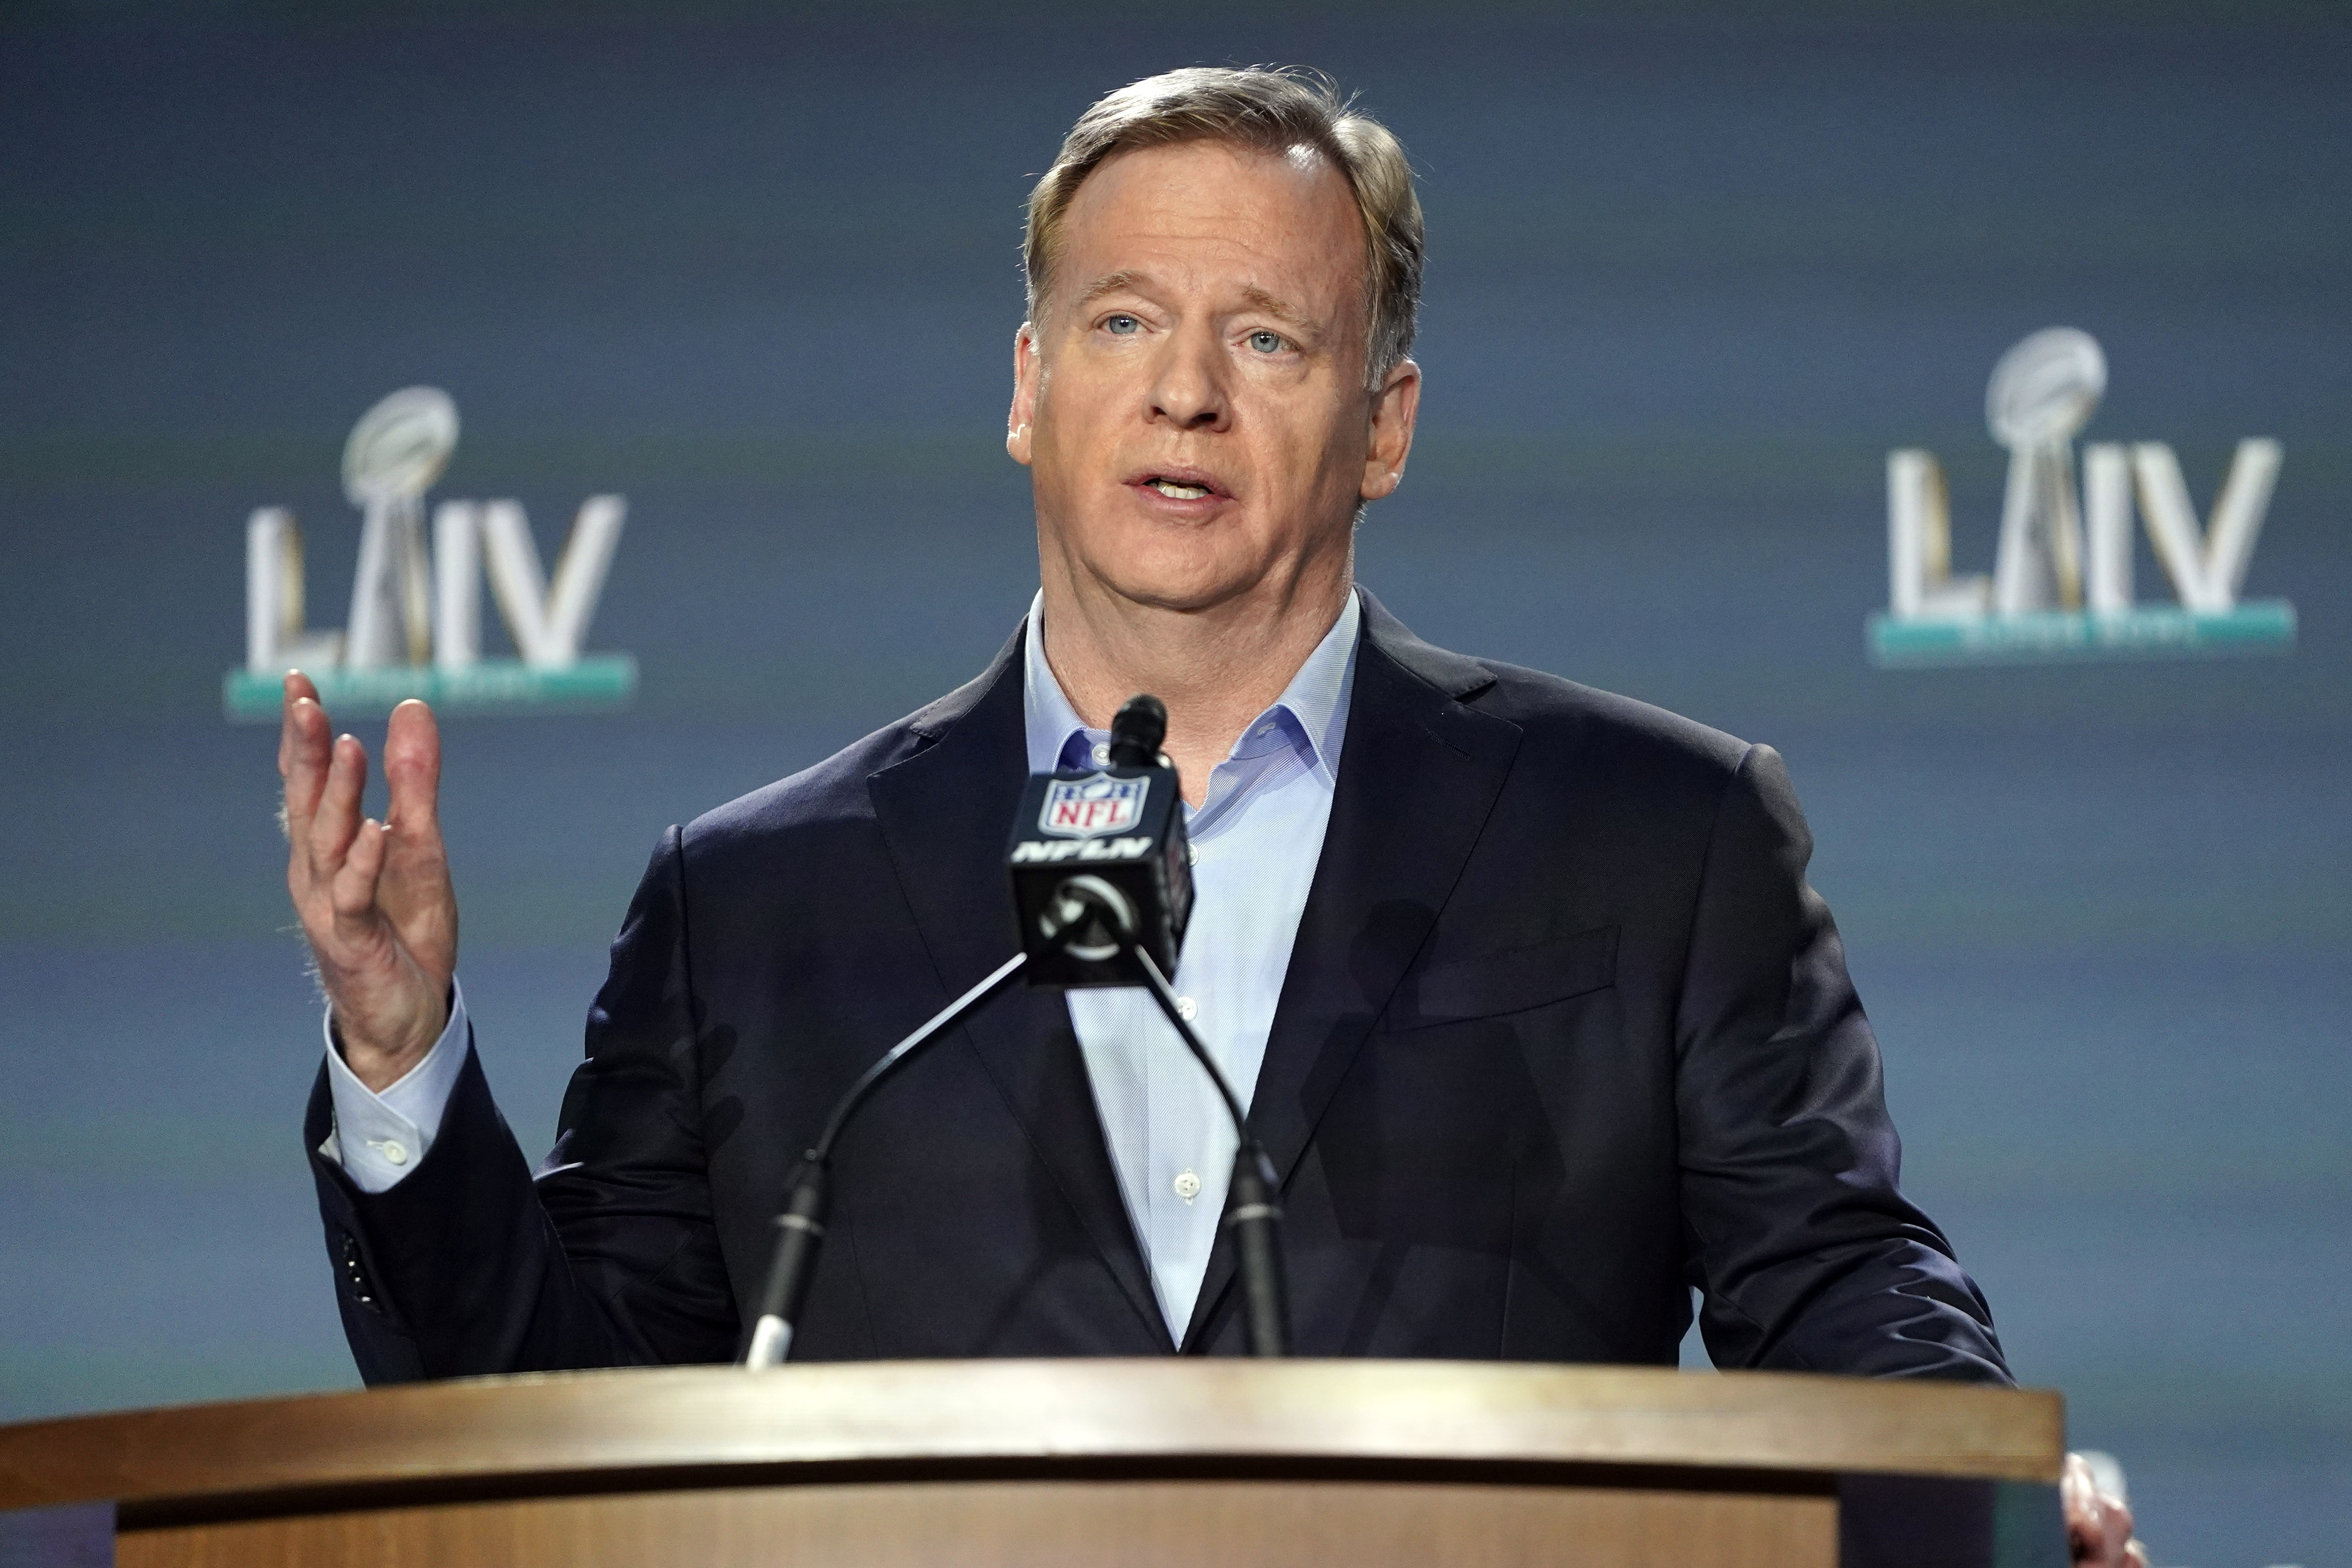 Patriots Fined 350 000 For Covid 19 Protocol Violations During October Outbreak Report Masslive Com